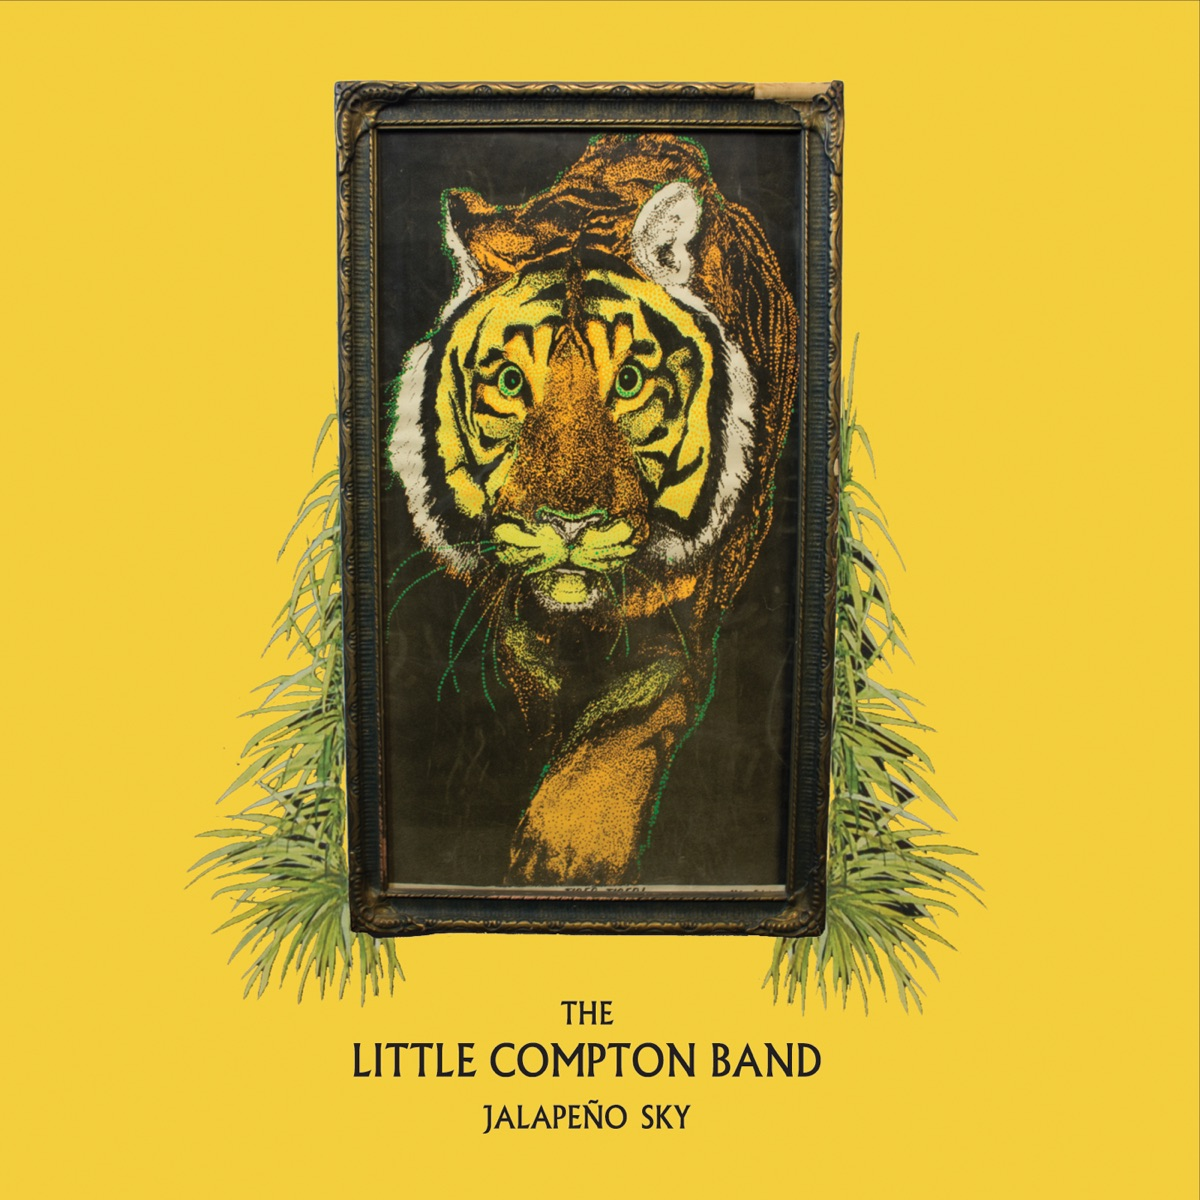 Jalapeño Sky The Little Compton Band CD cover